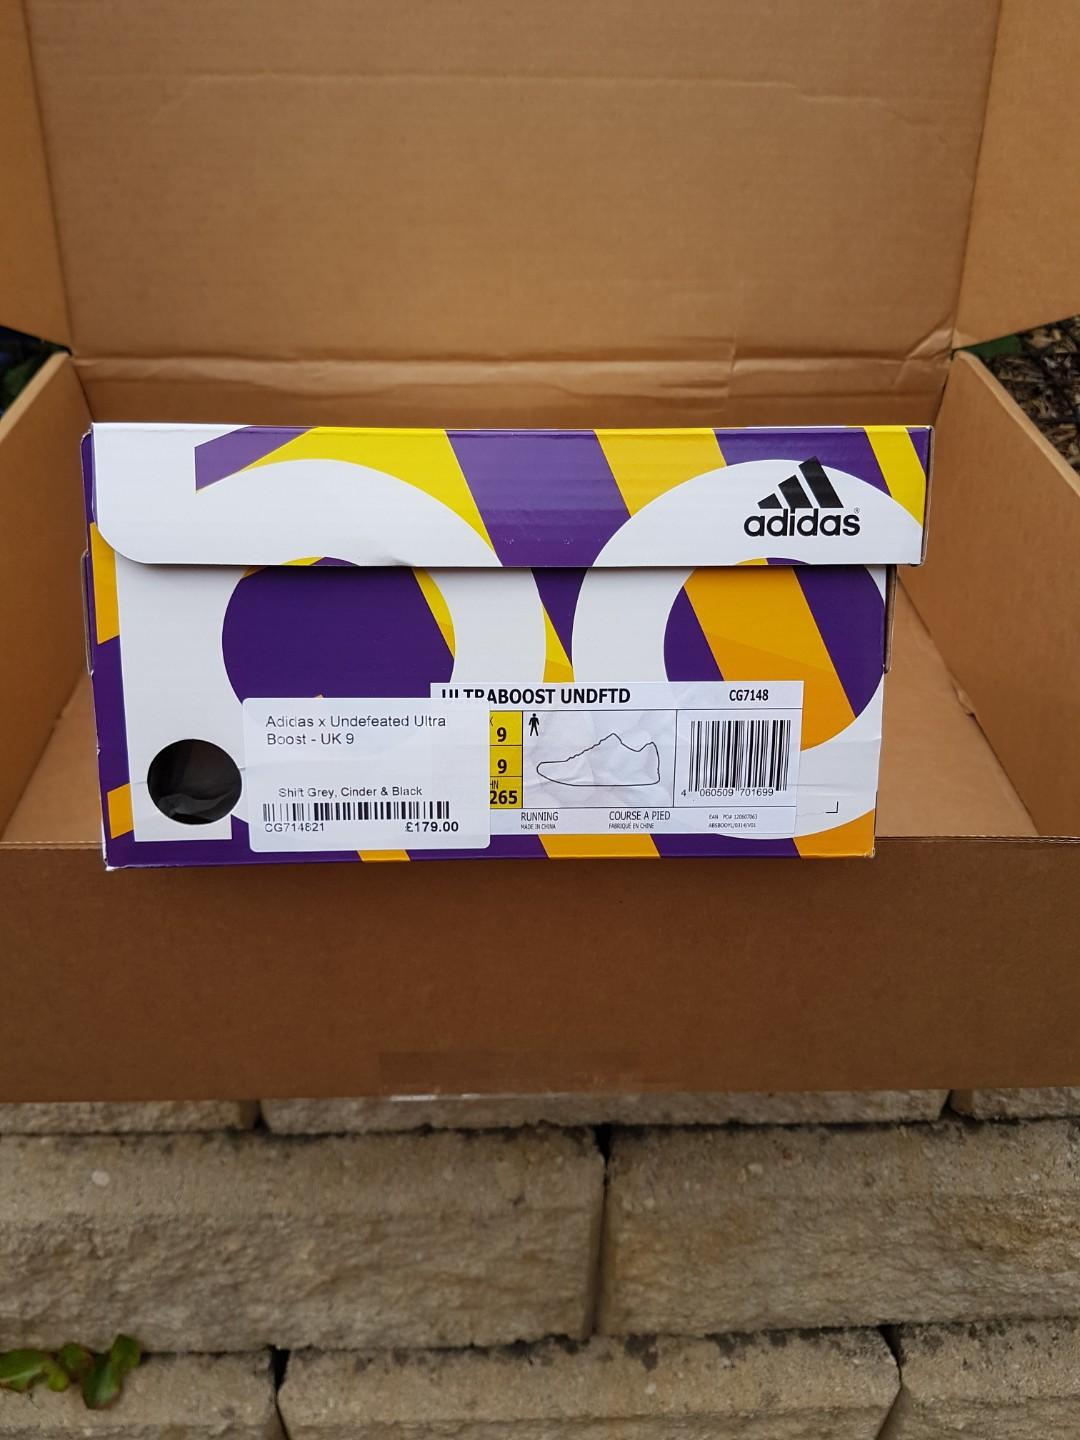 ADIDAS UNDEFEATED ULTRA BOOST shoes undftd Adidas